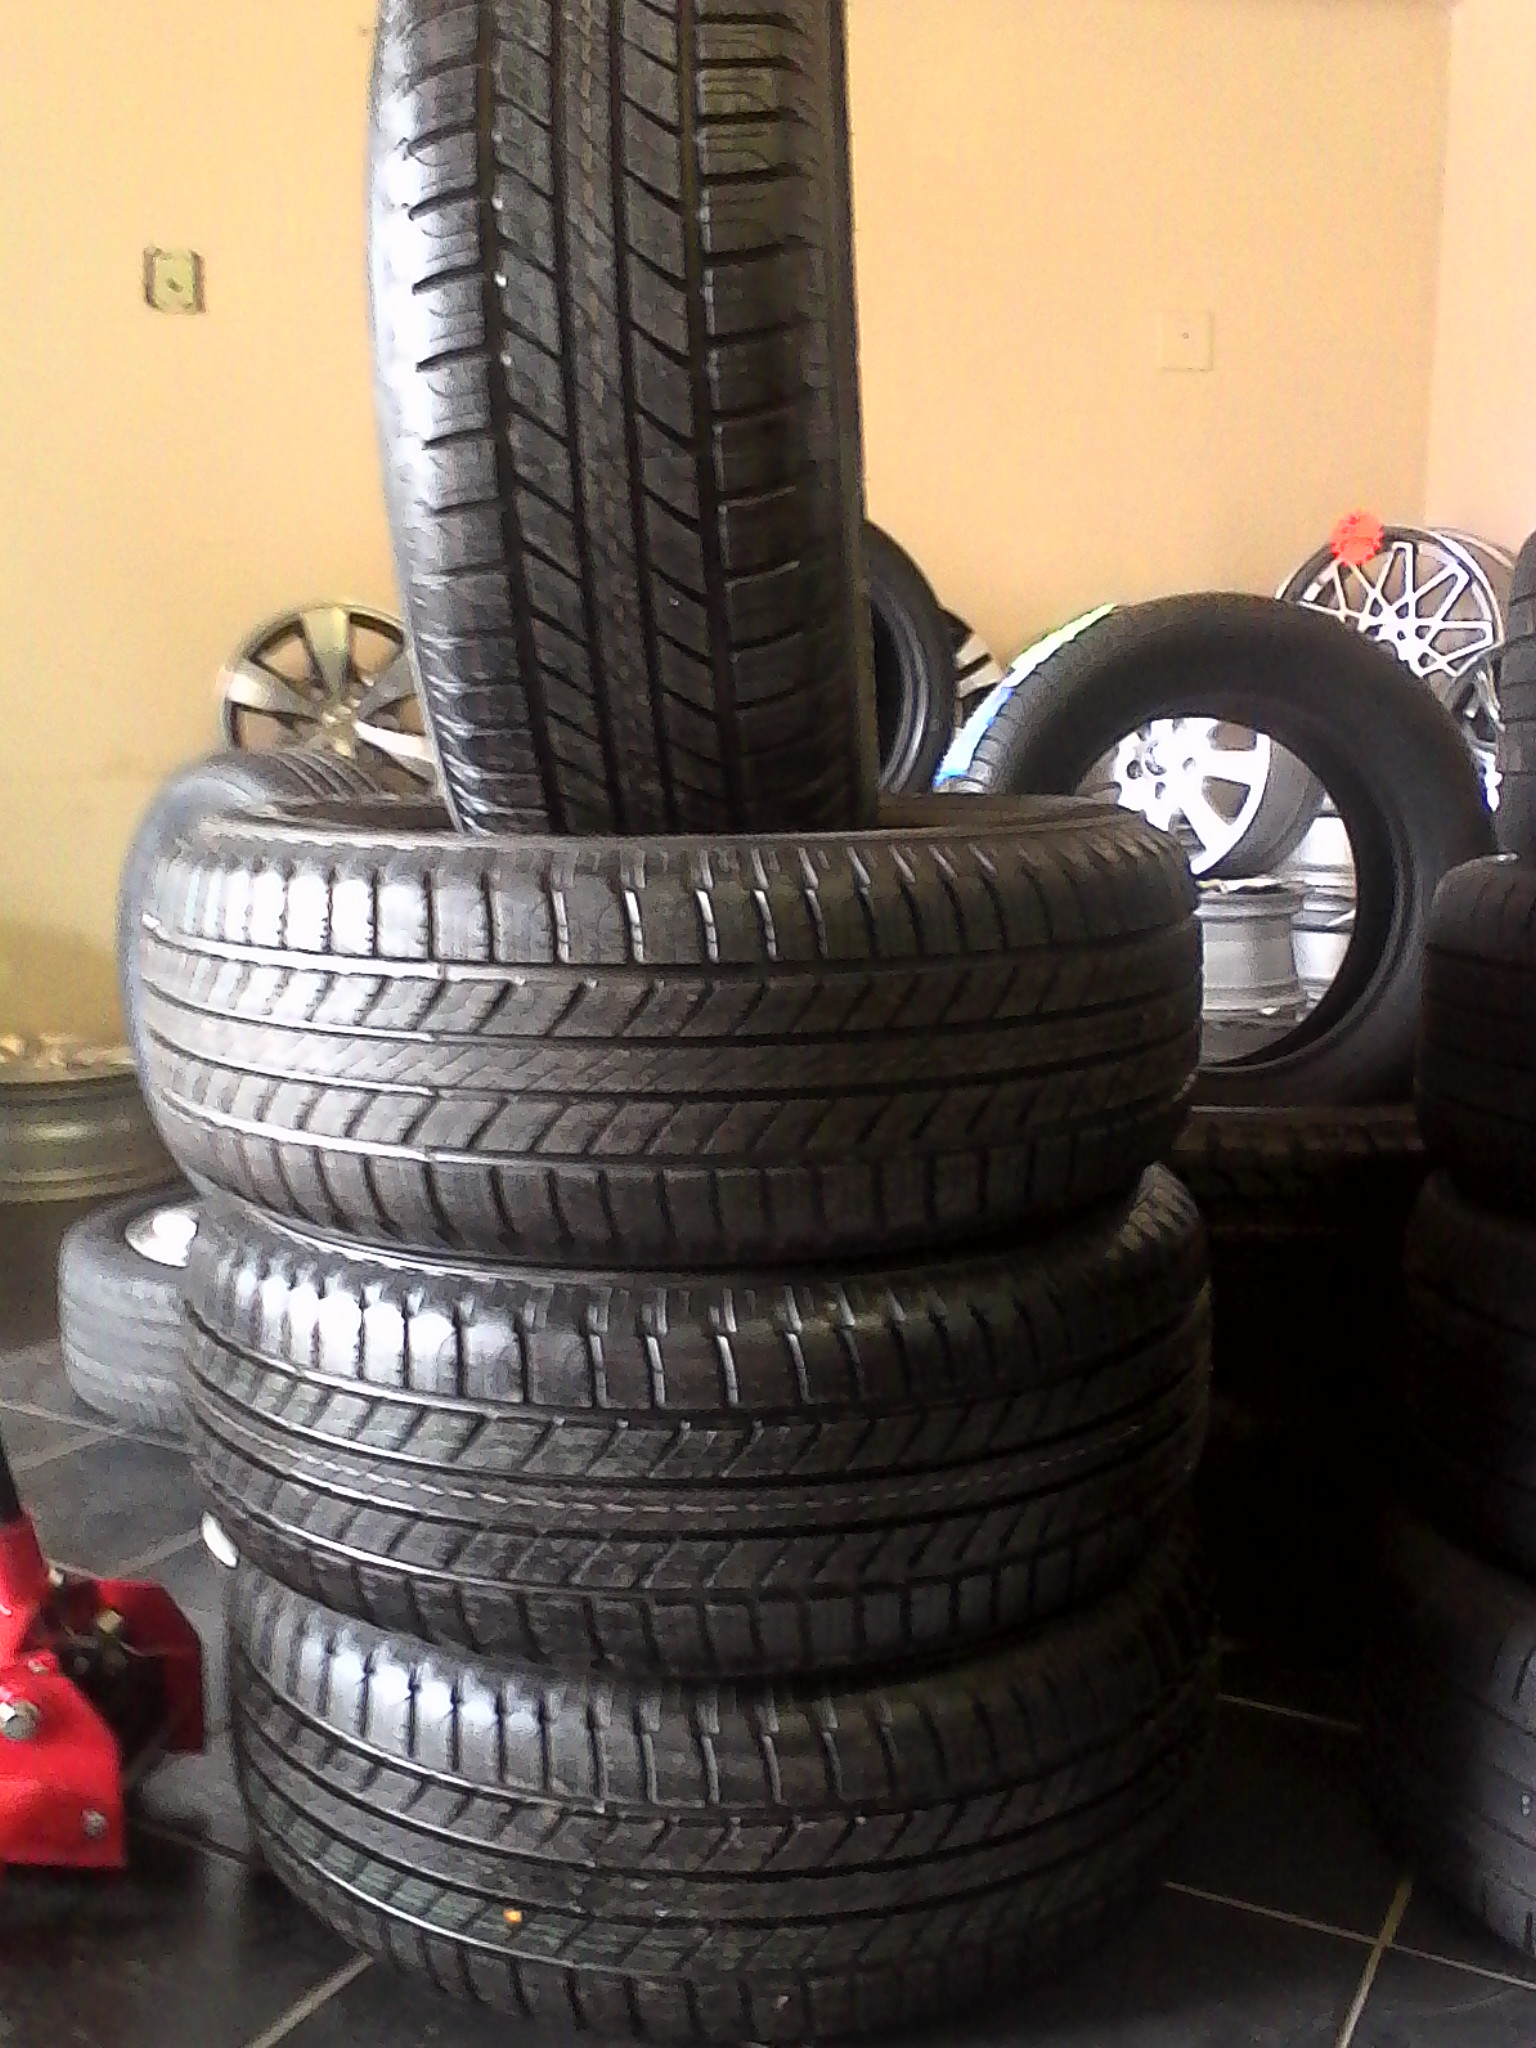 265/65/17 goodyear wrangler all weather 4x new tyres r5599